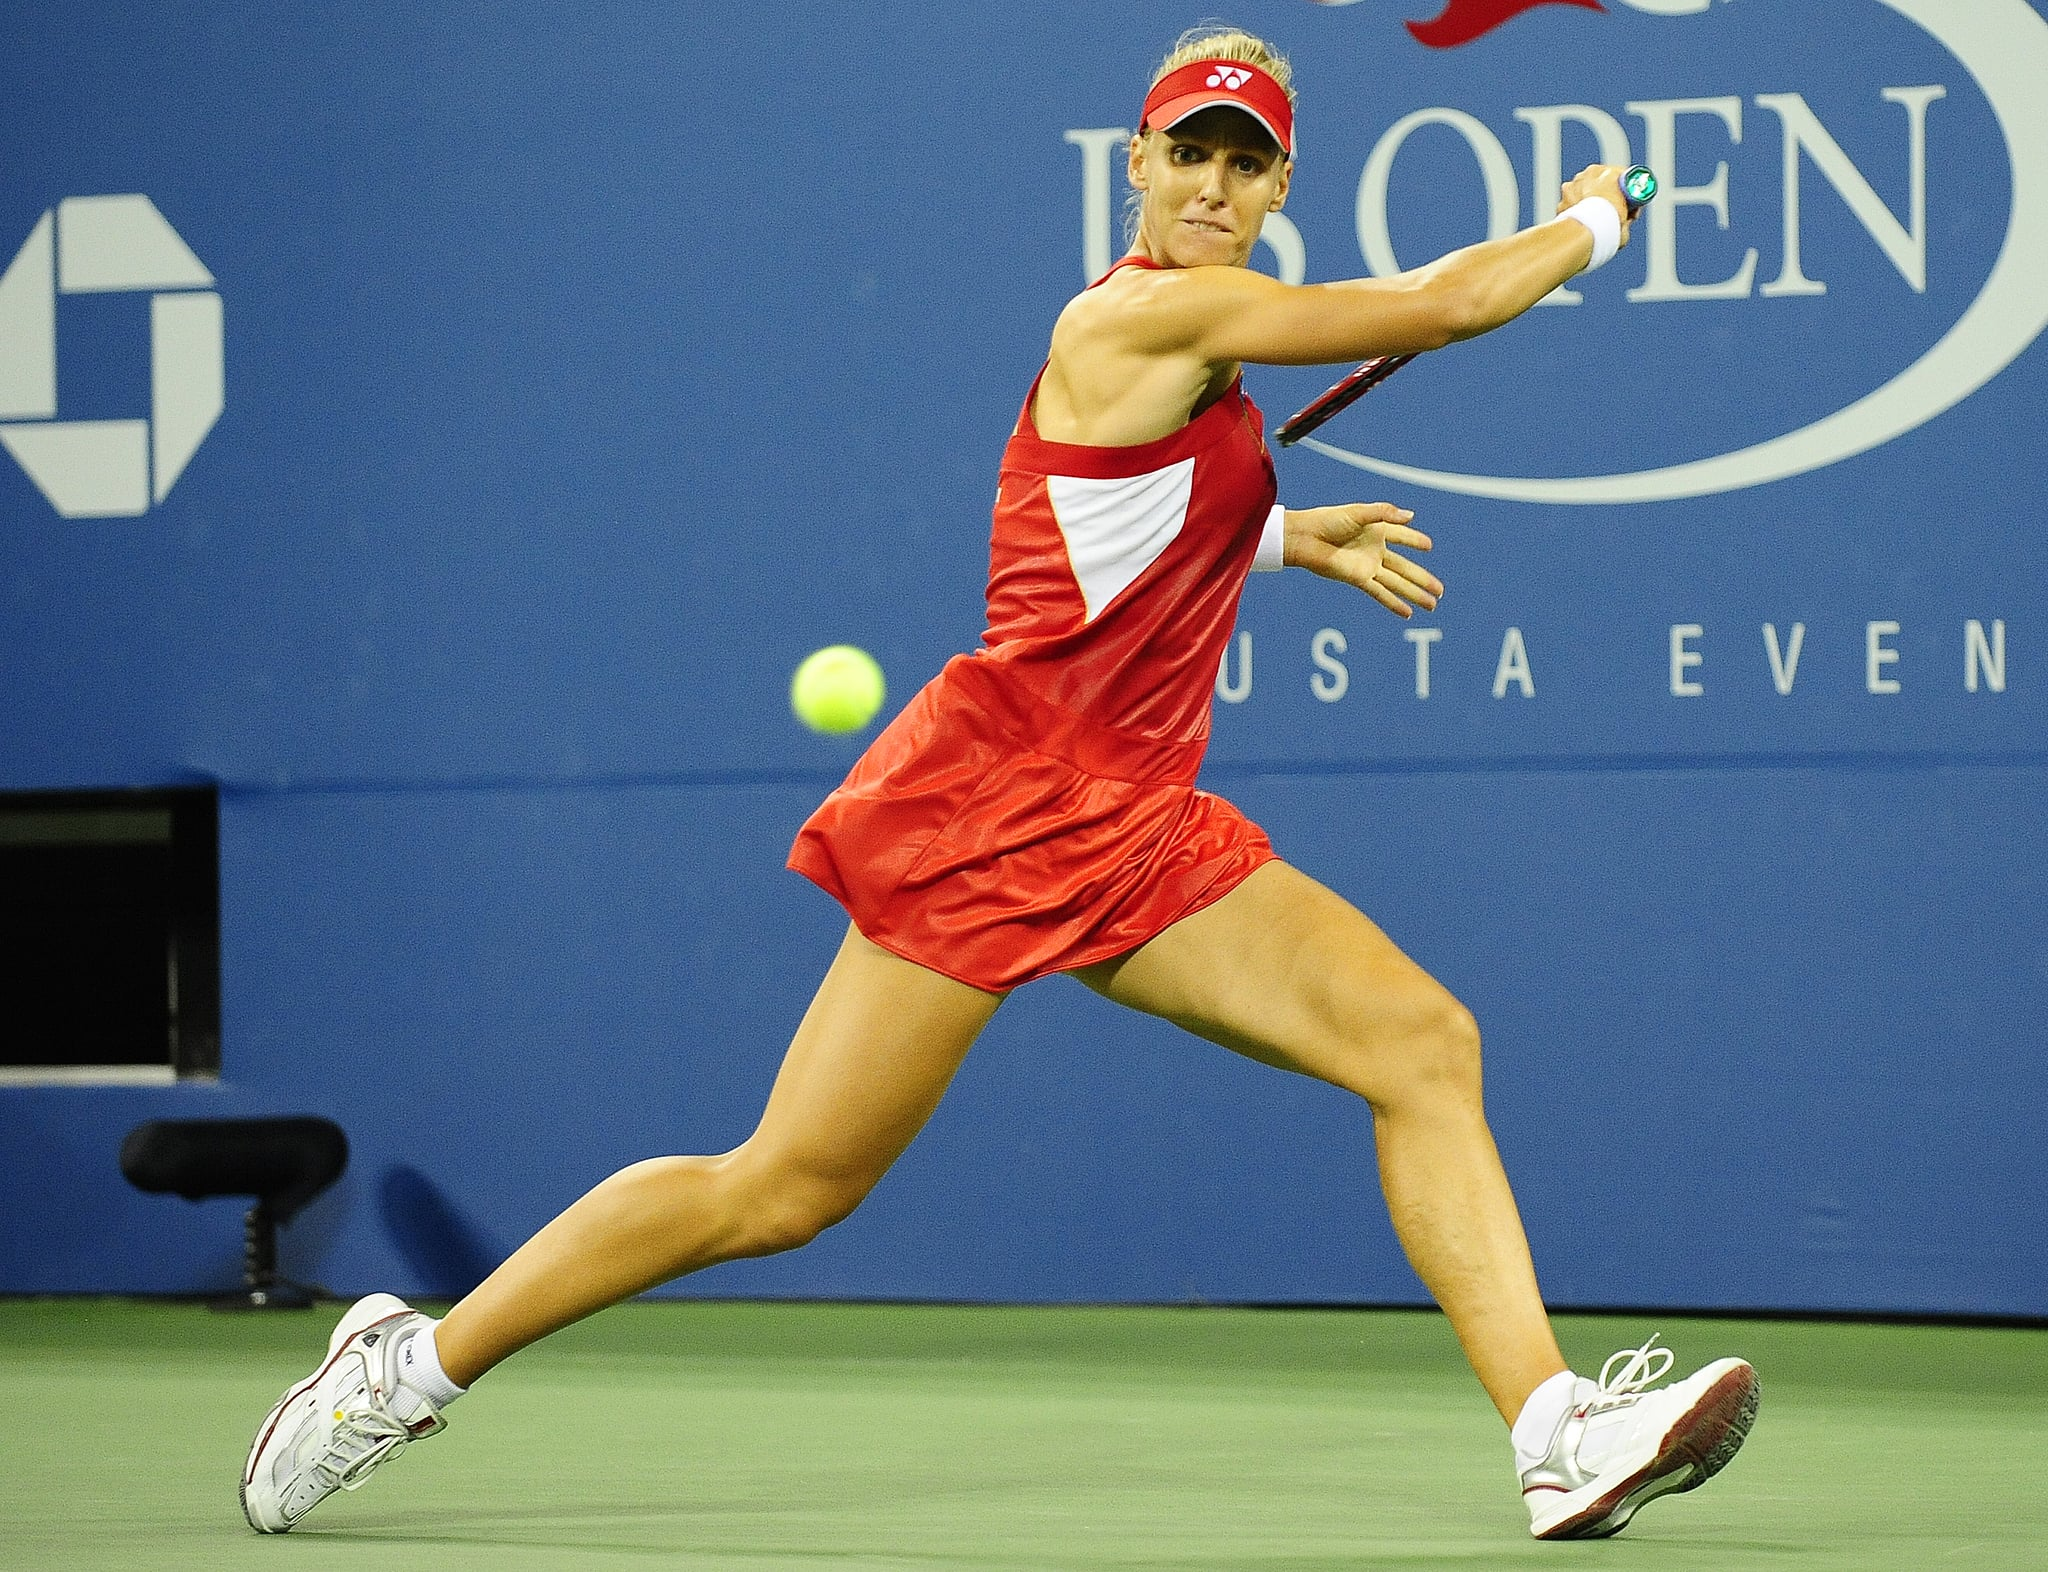 Elena Dementieva wore a loose red and white tennis dress with a matching visor to the 2010 US Open.